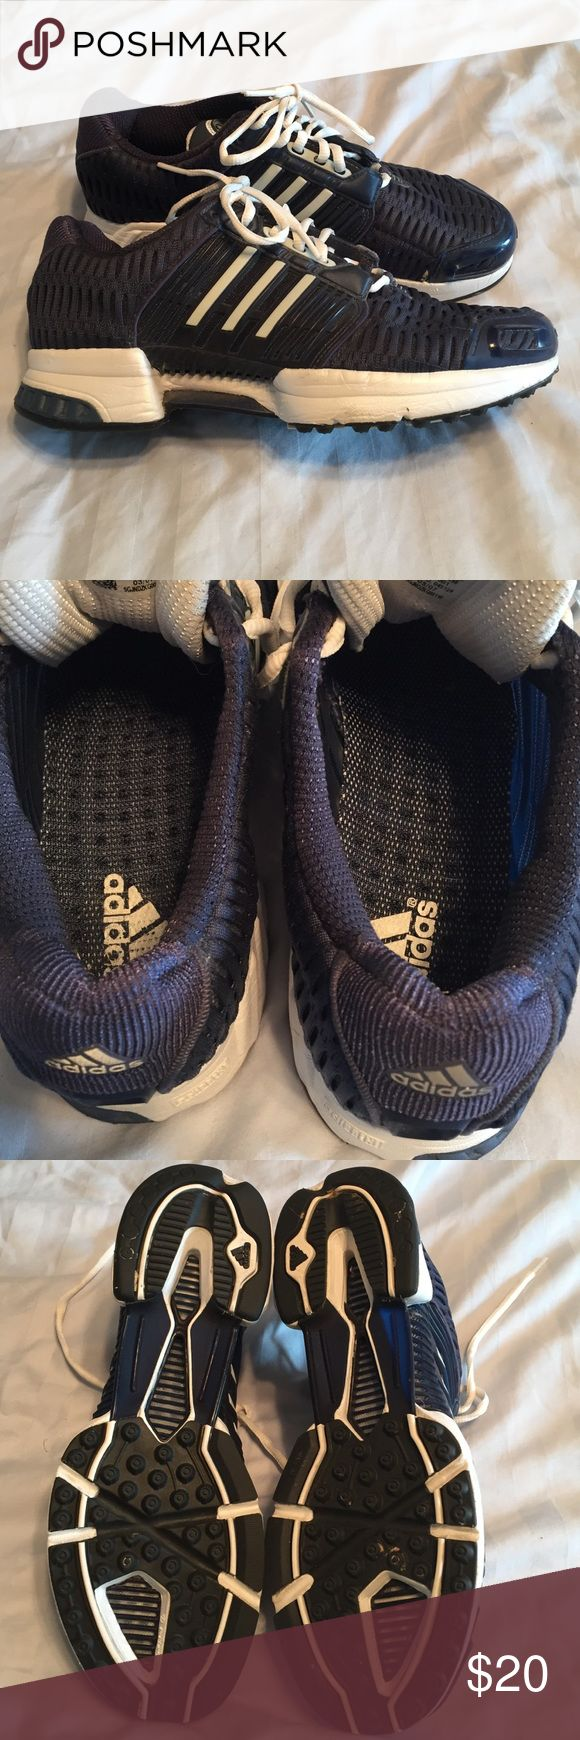 Adidas Running Shoes Adidas ClimaCool Lightweight shoe. They are navy and white. Only been worn once. It's a size 7.5 but fits like a size 9. Adidas Shoes